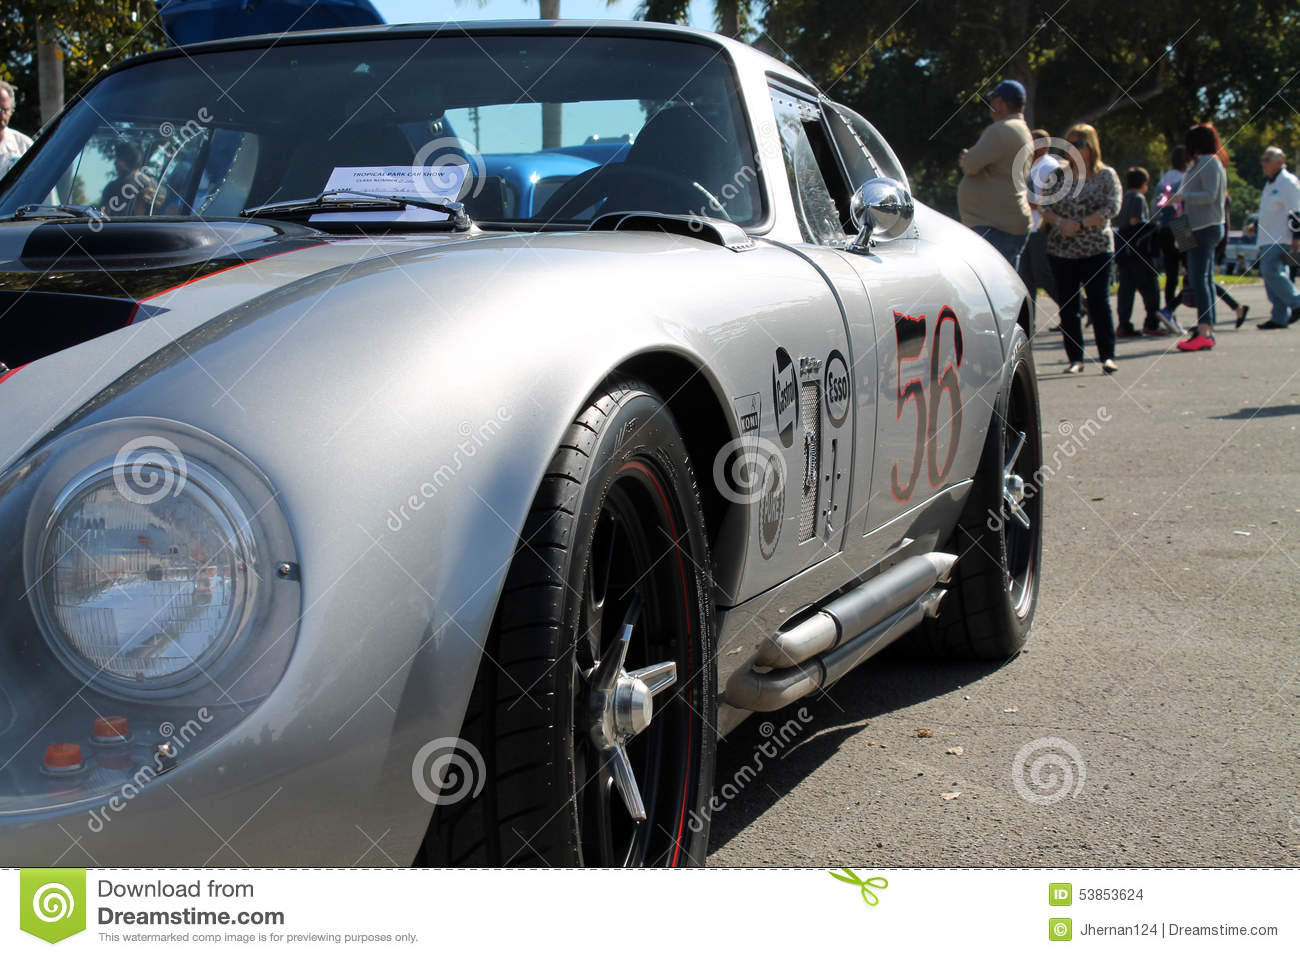 Old classic race car editorial stock image. Image of grey - 53853624